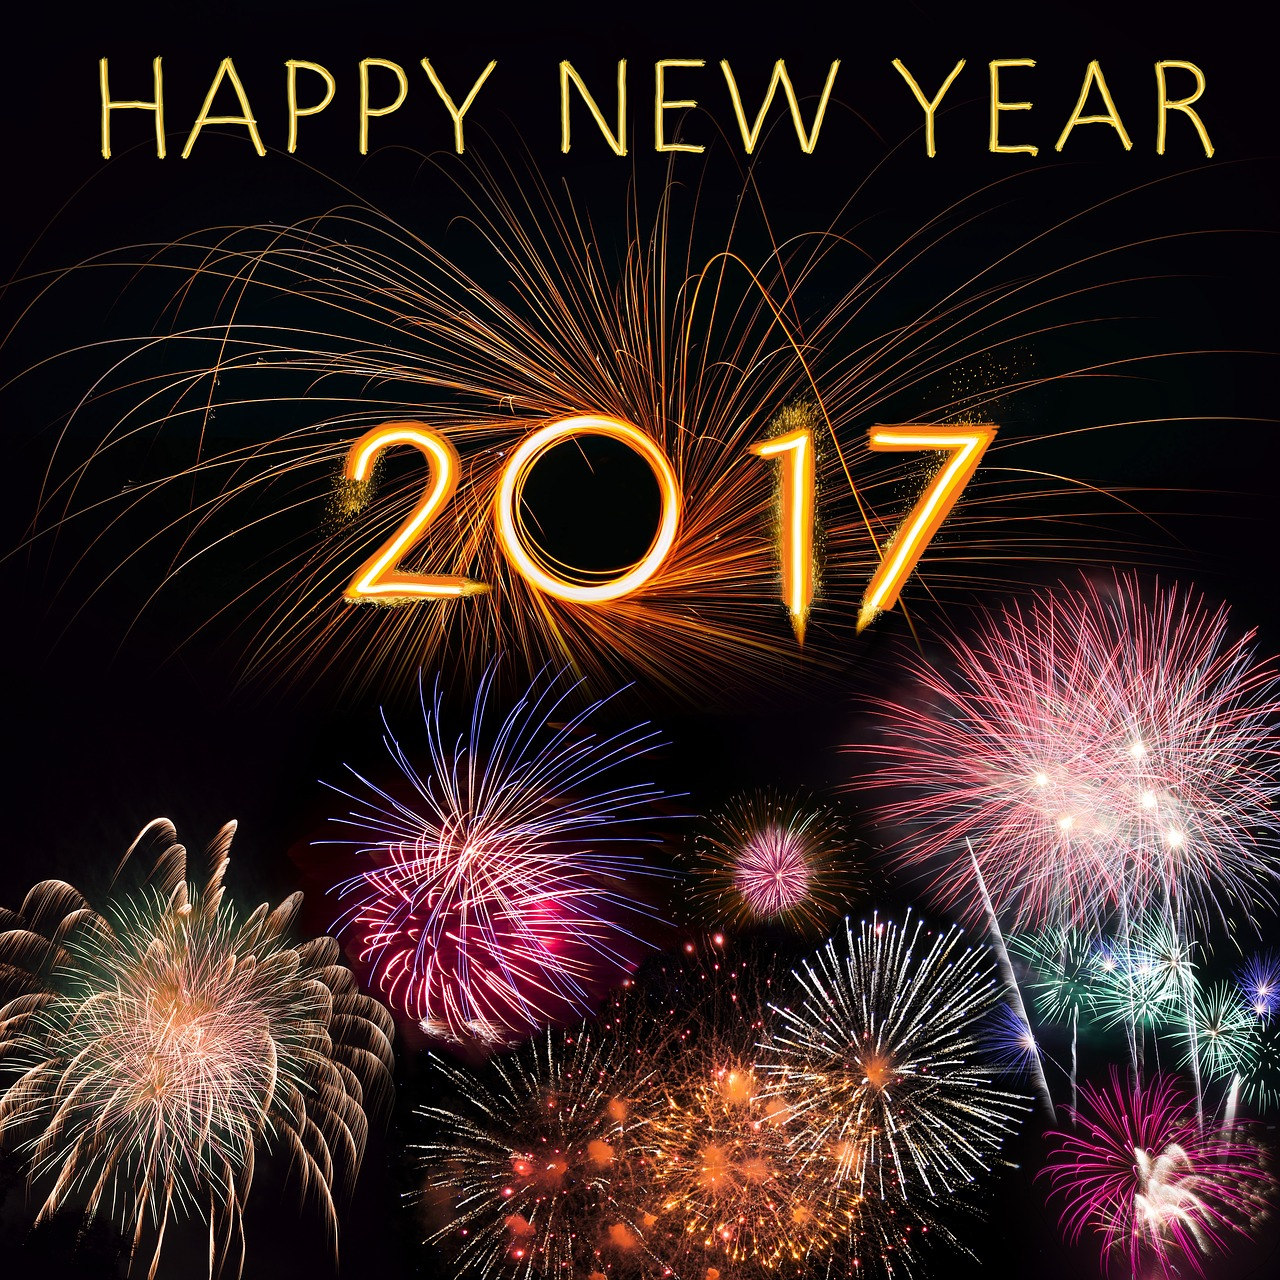 Happy New Year, 2017 is on its way, Good year or bad year